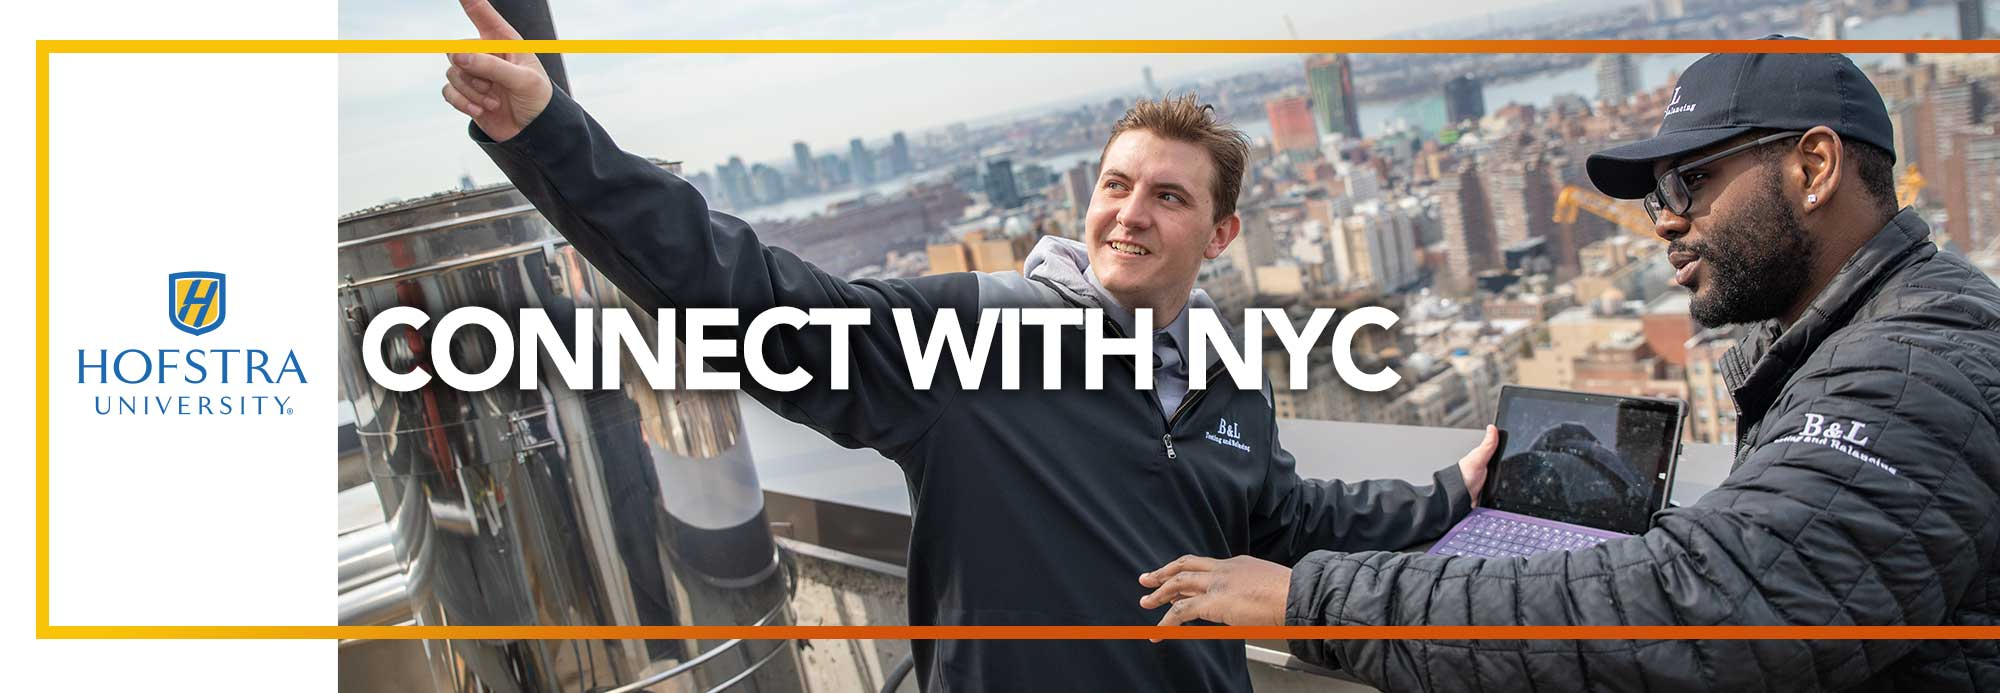 Hofstra University - Connect with NYC